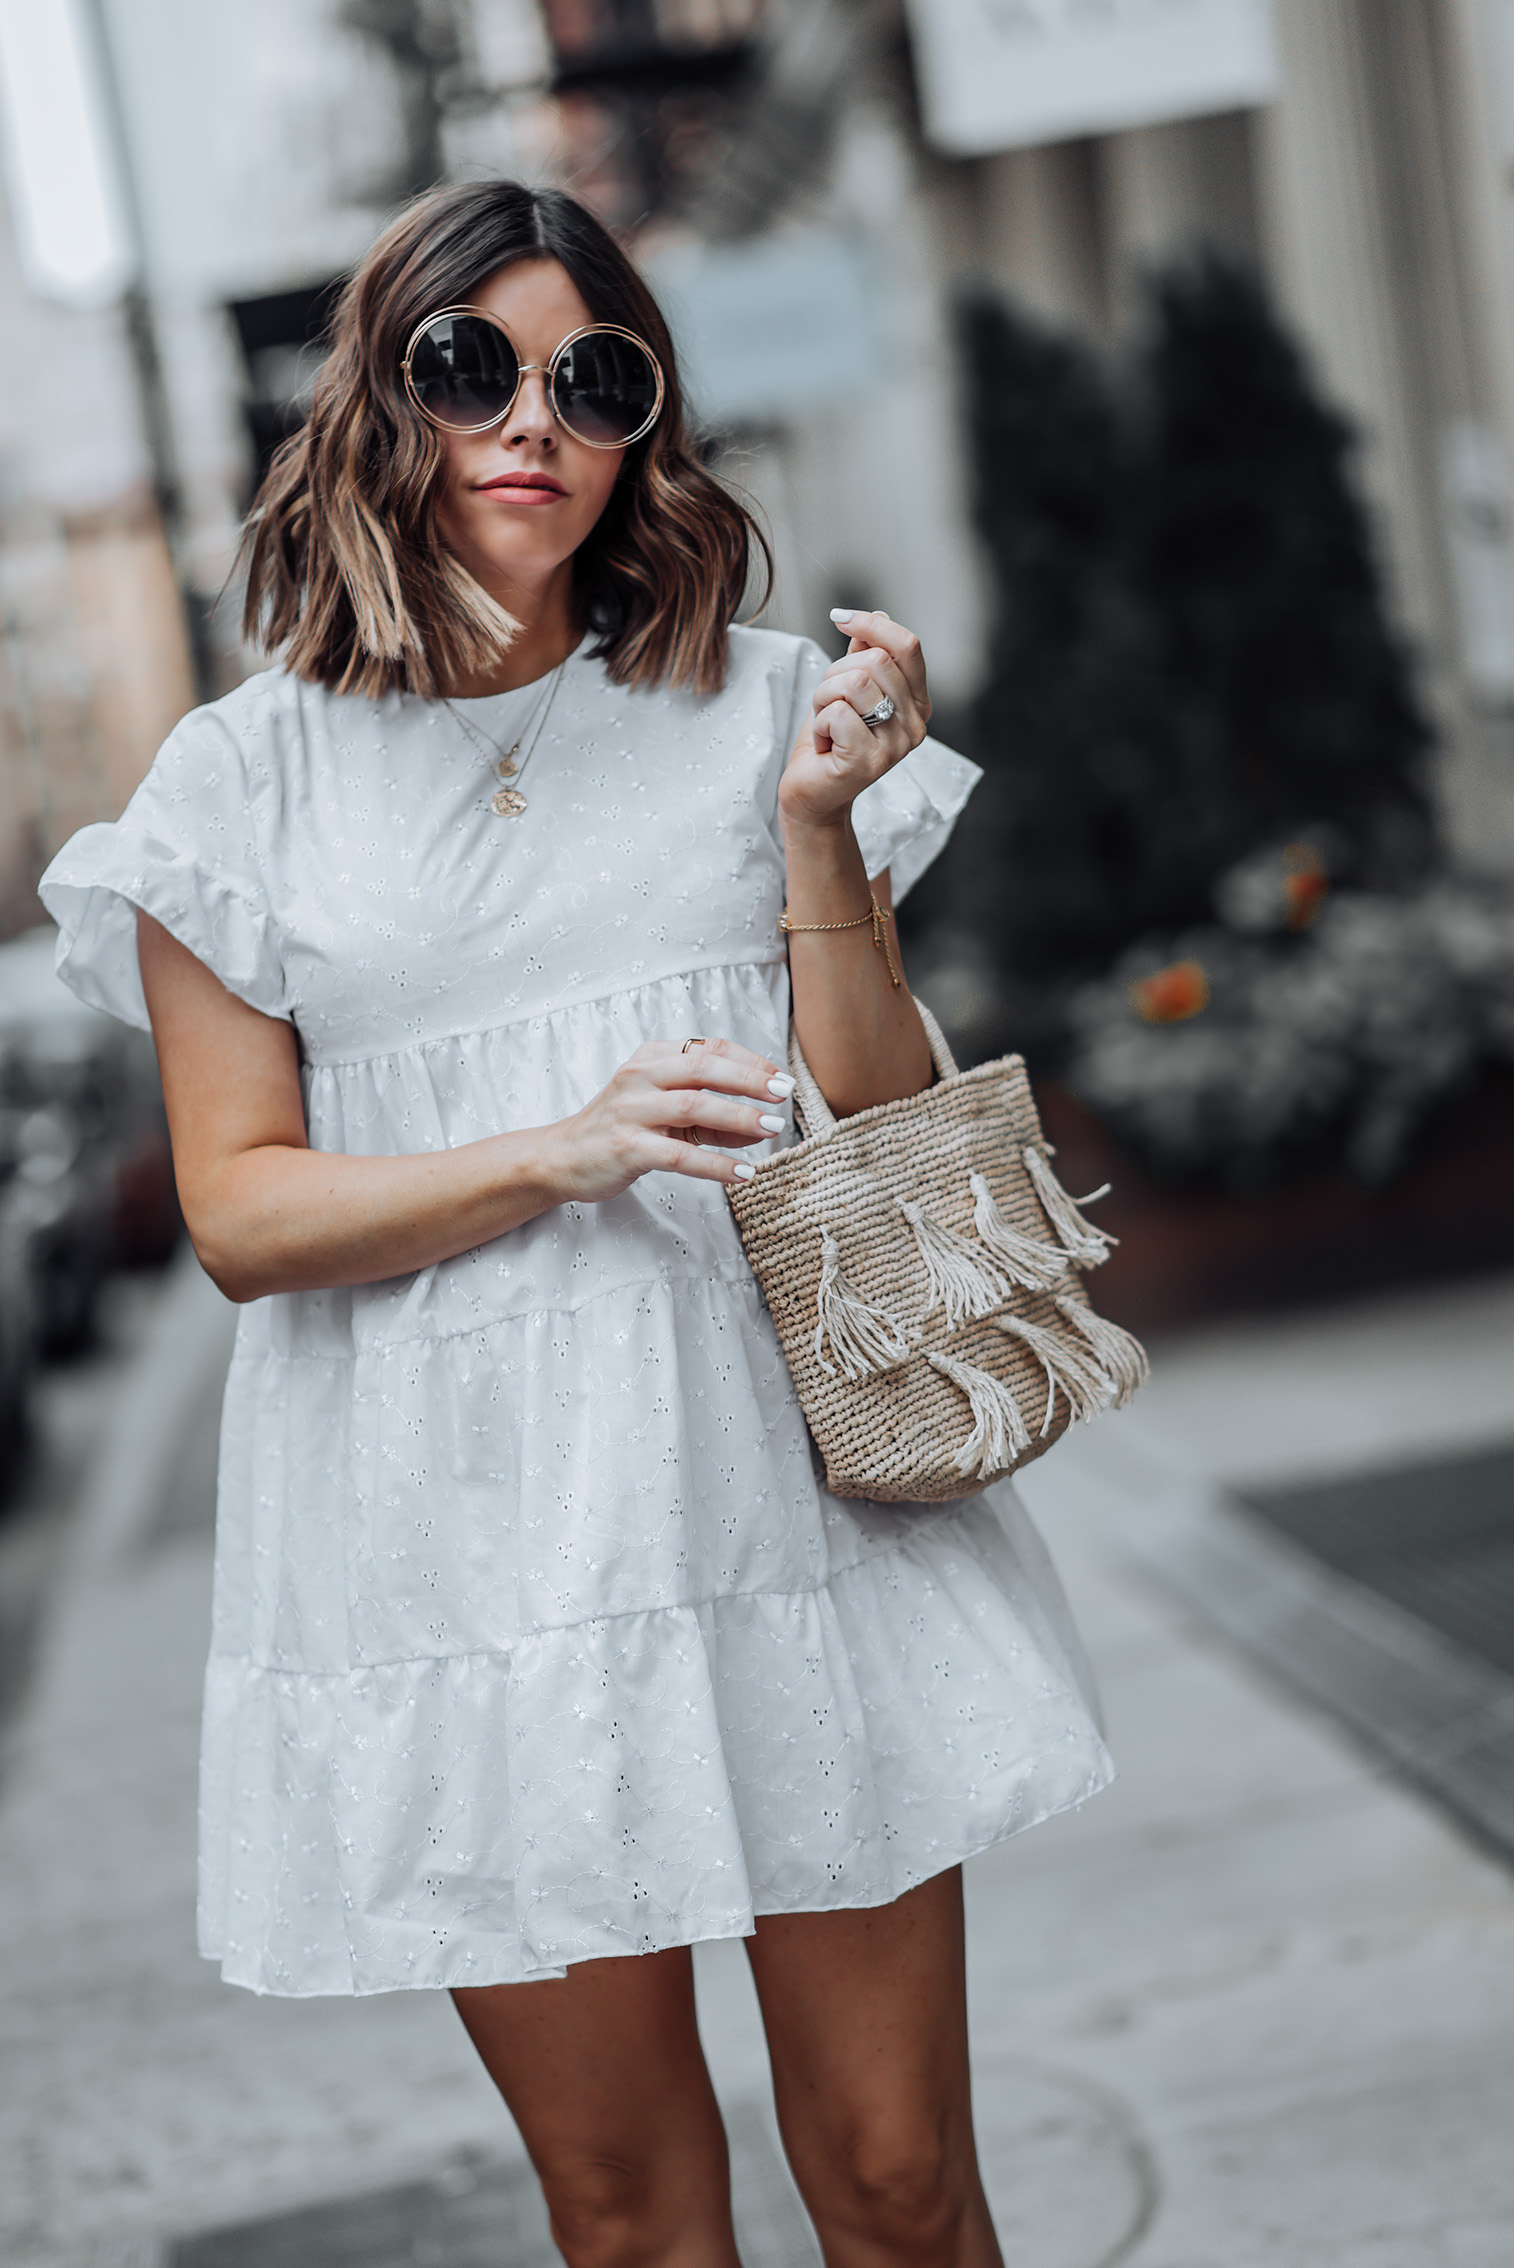 Babydoll dress | Tassel Bag | Sunnies | #liketkit #LWD #casualoutfits #streetstyle